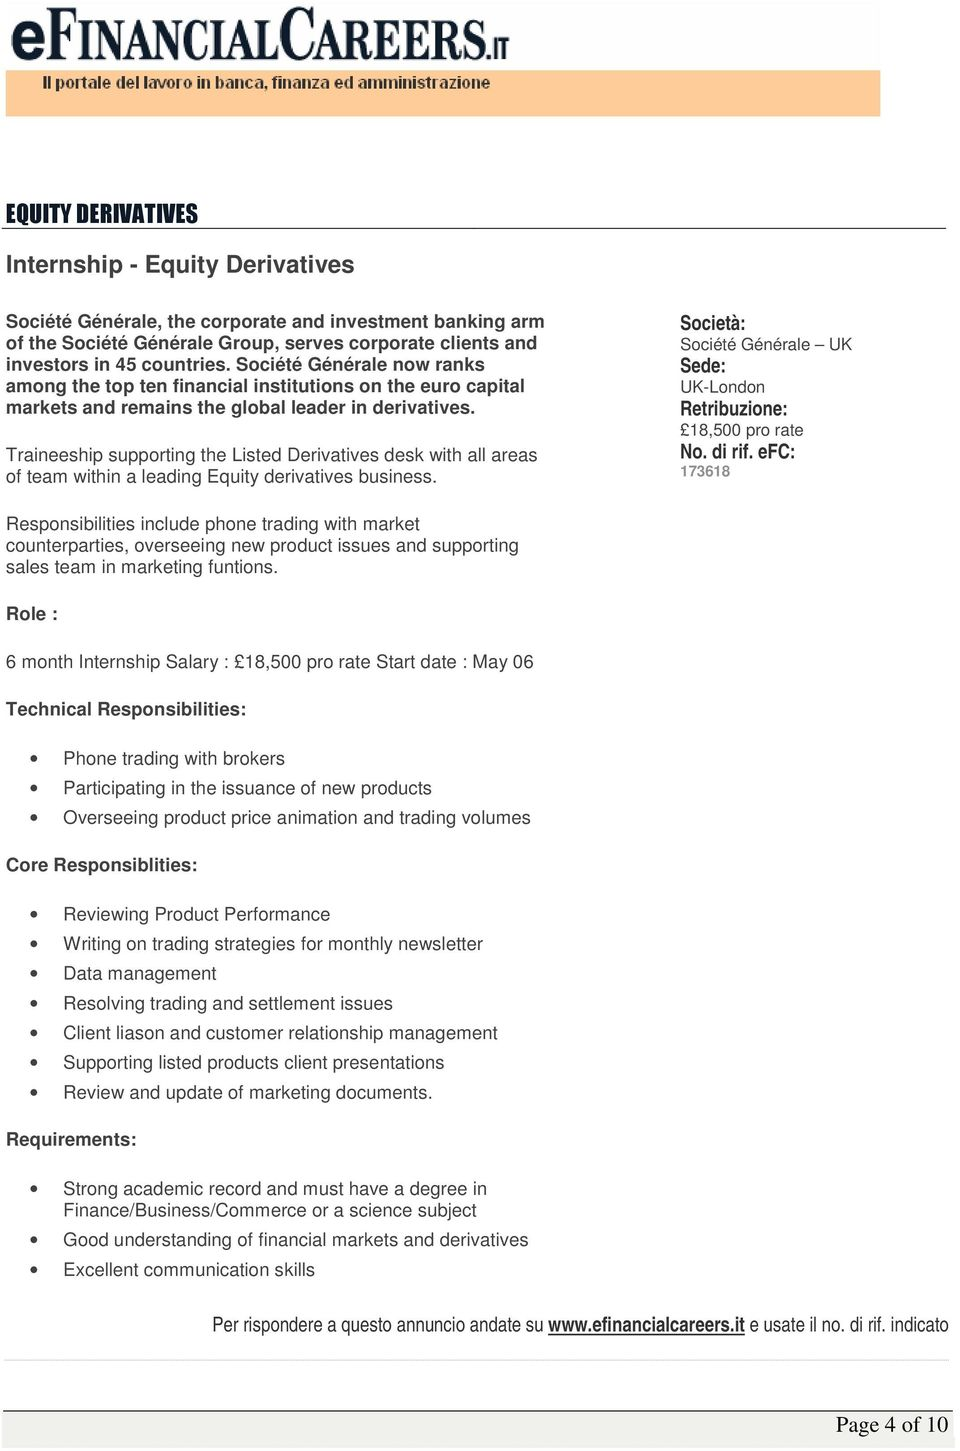 Traineeship supporting the Listed Derivatives desk with all areas of team within a leading Equity derivatives business.